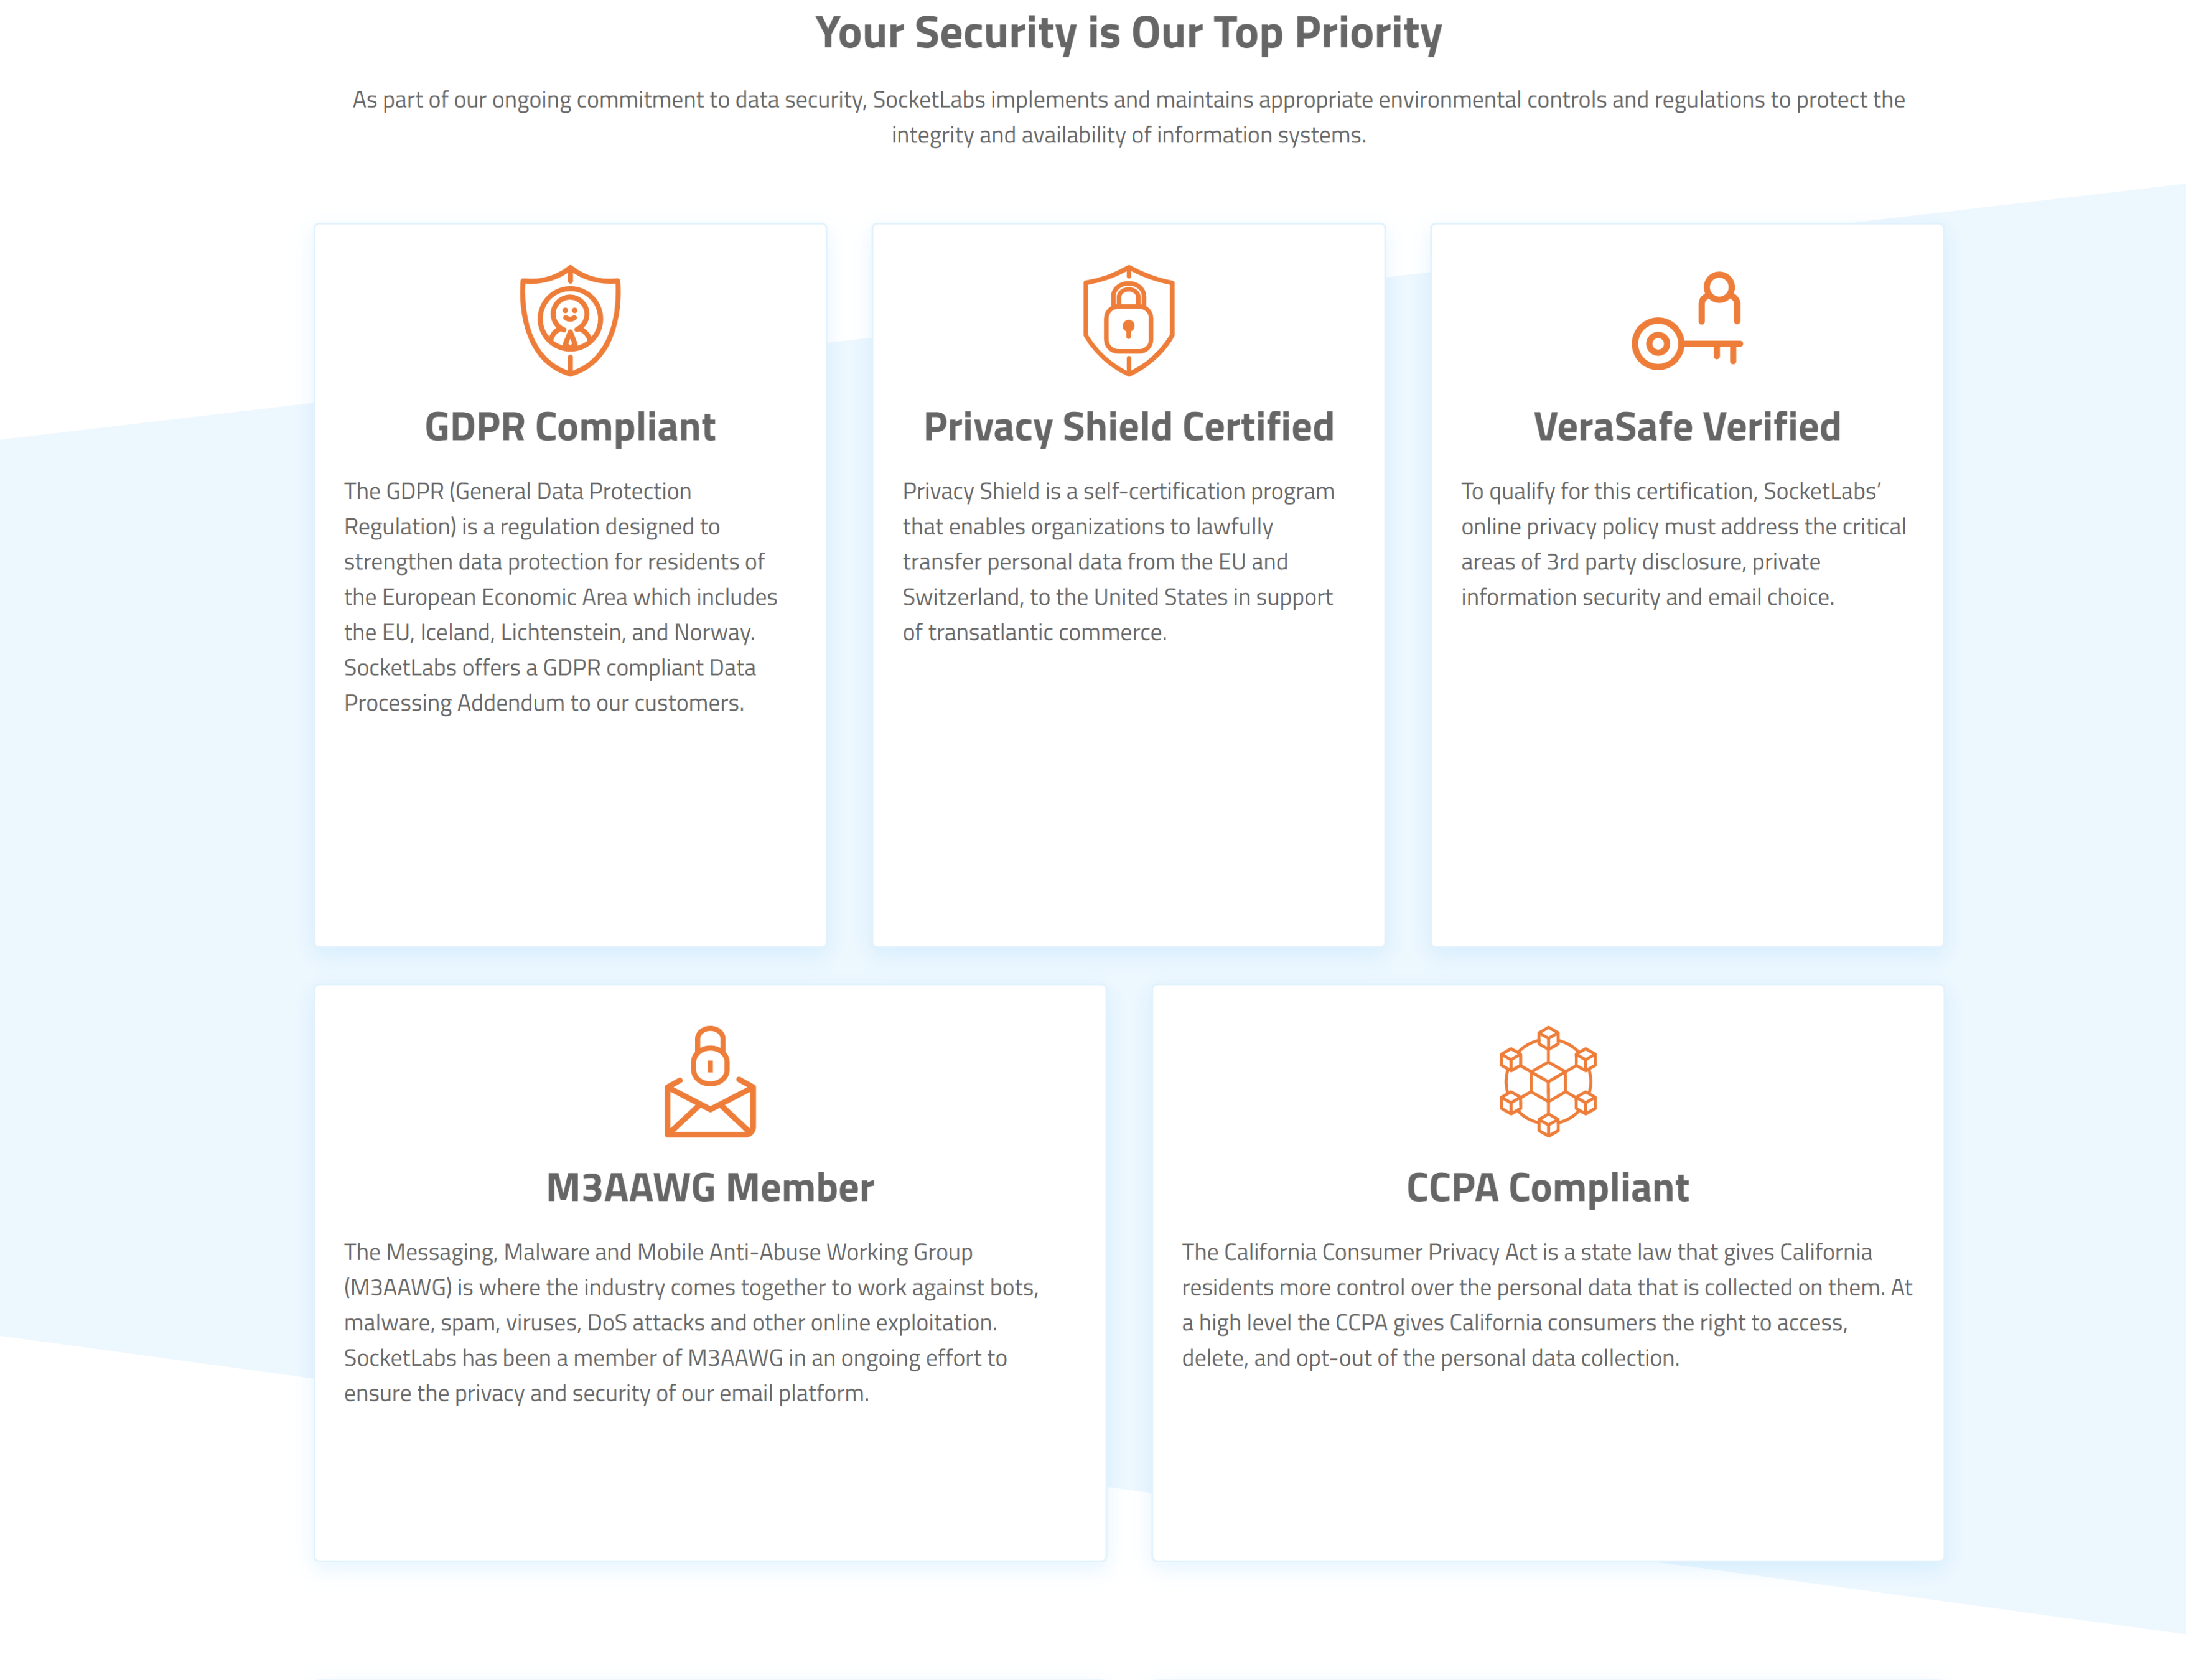 At SocketLabs, security is our top concern.  That why we implement and support all necessary environmental controls and regulations to protect the integrity of our information systems.